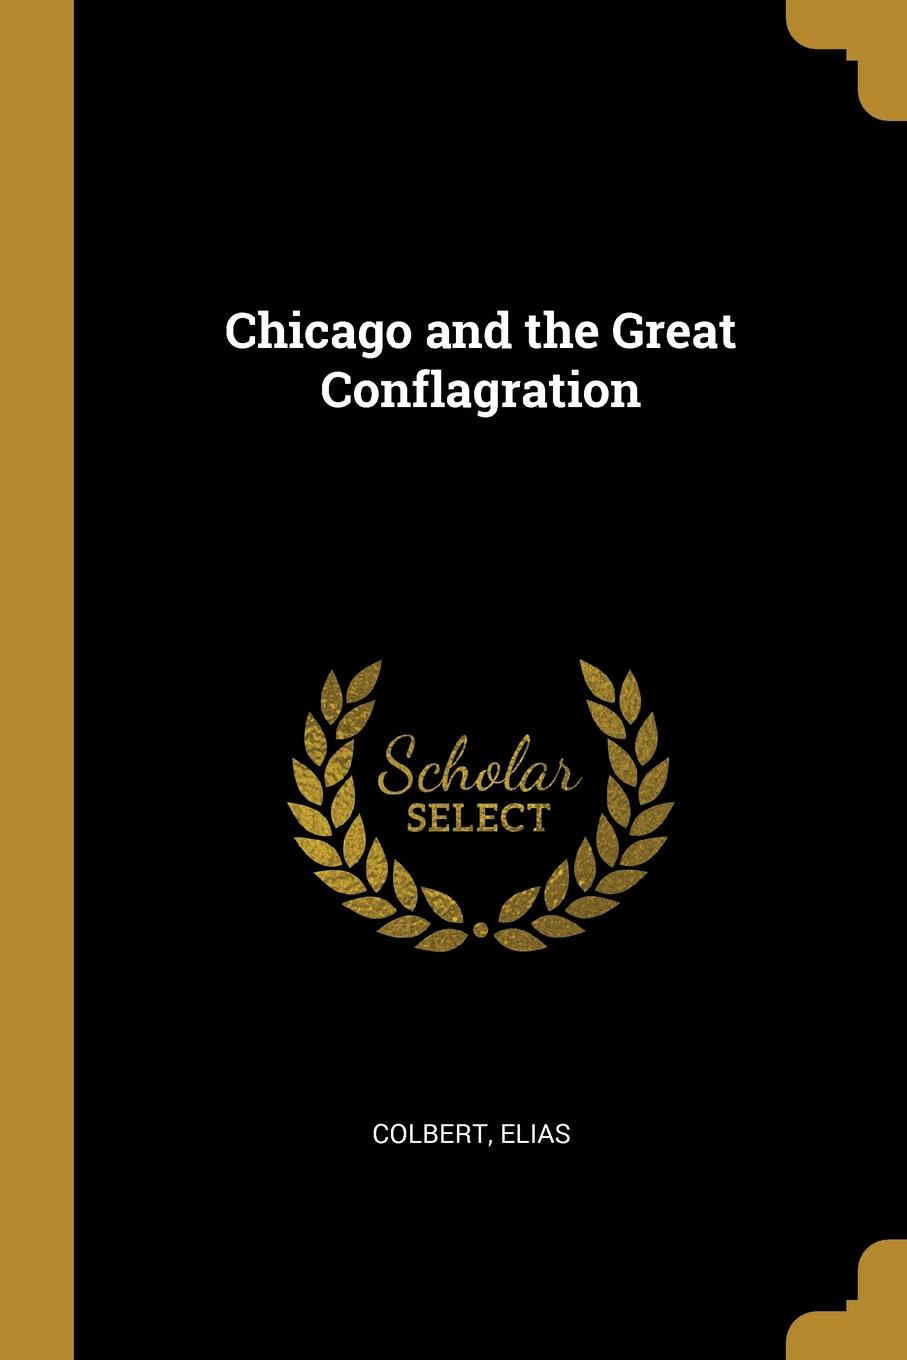 Colbert Elias. Chicago and the Great Conflagration